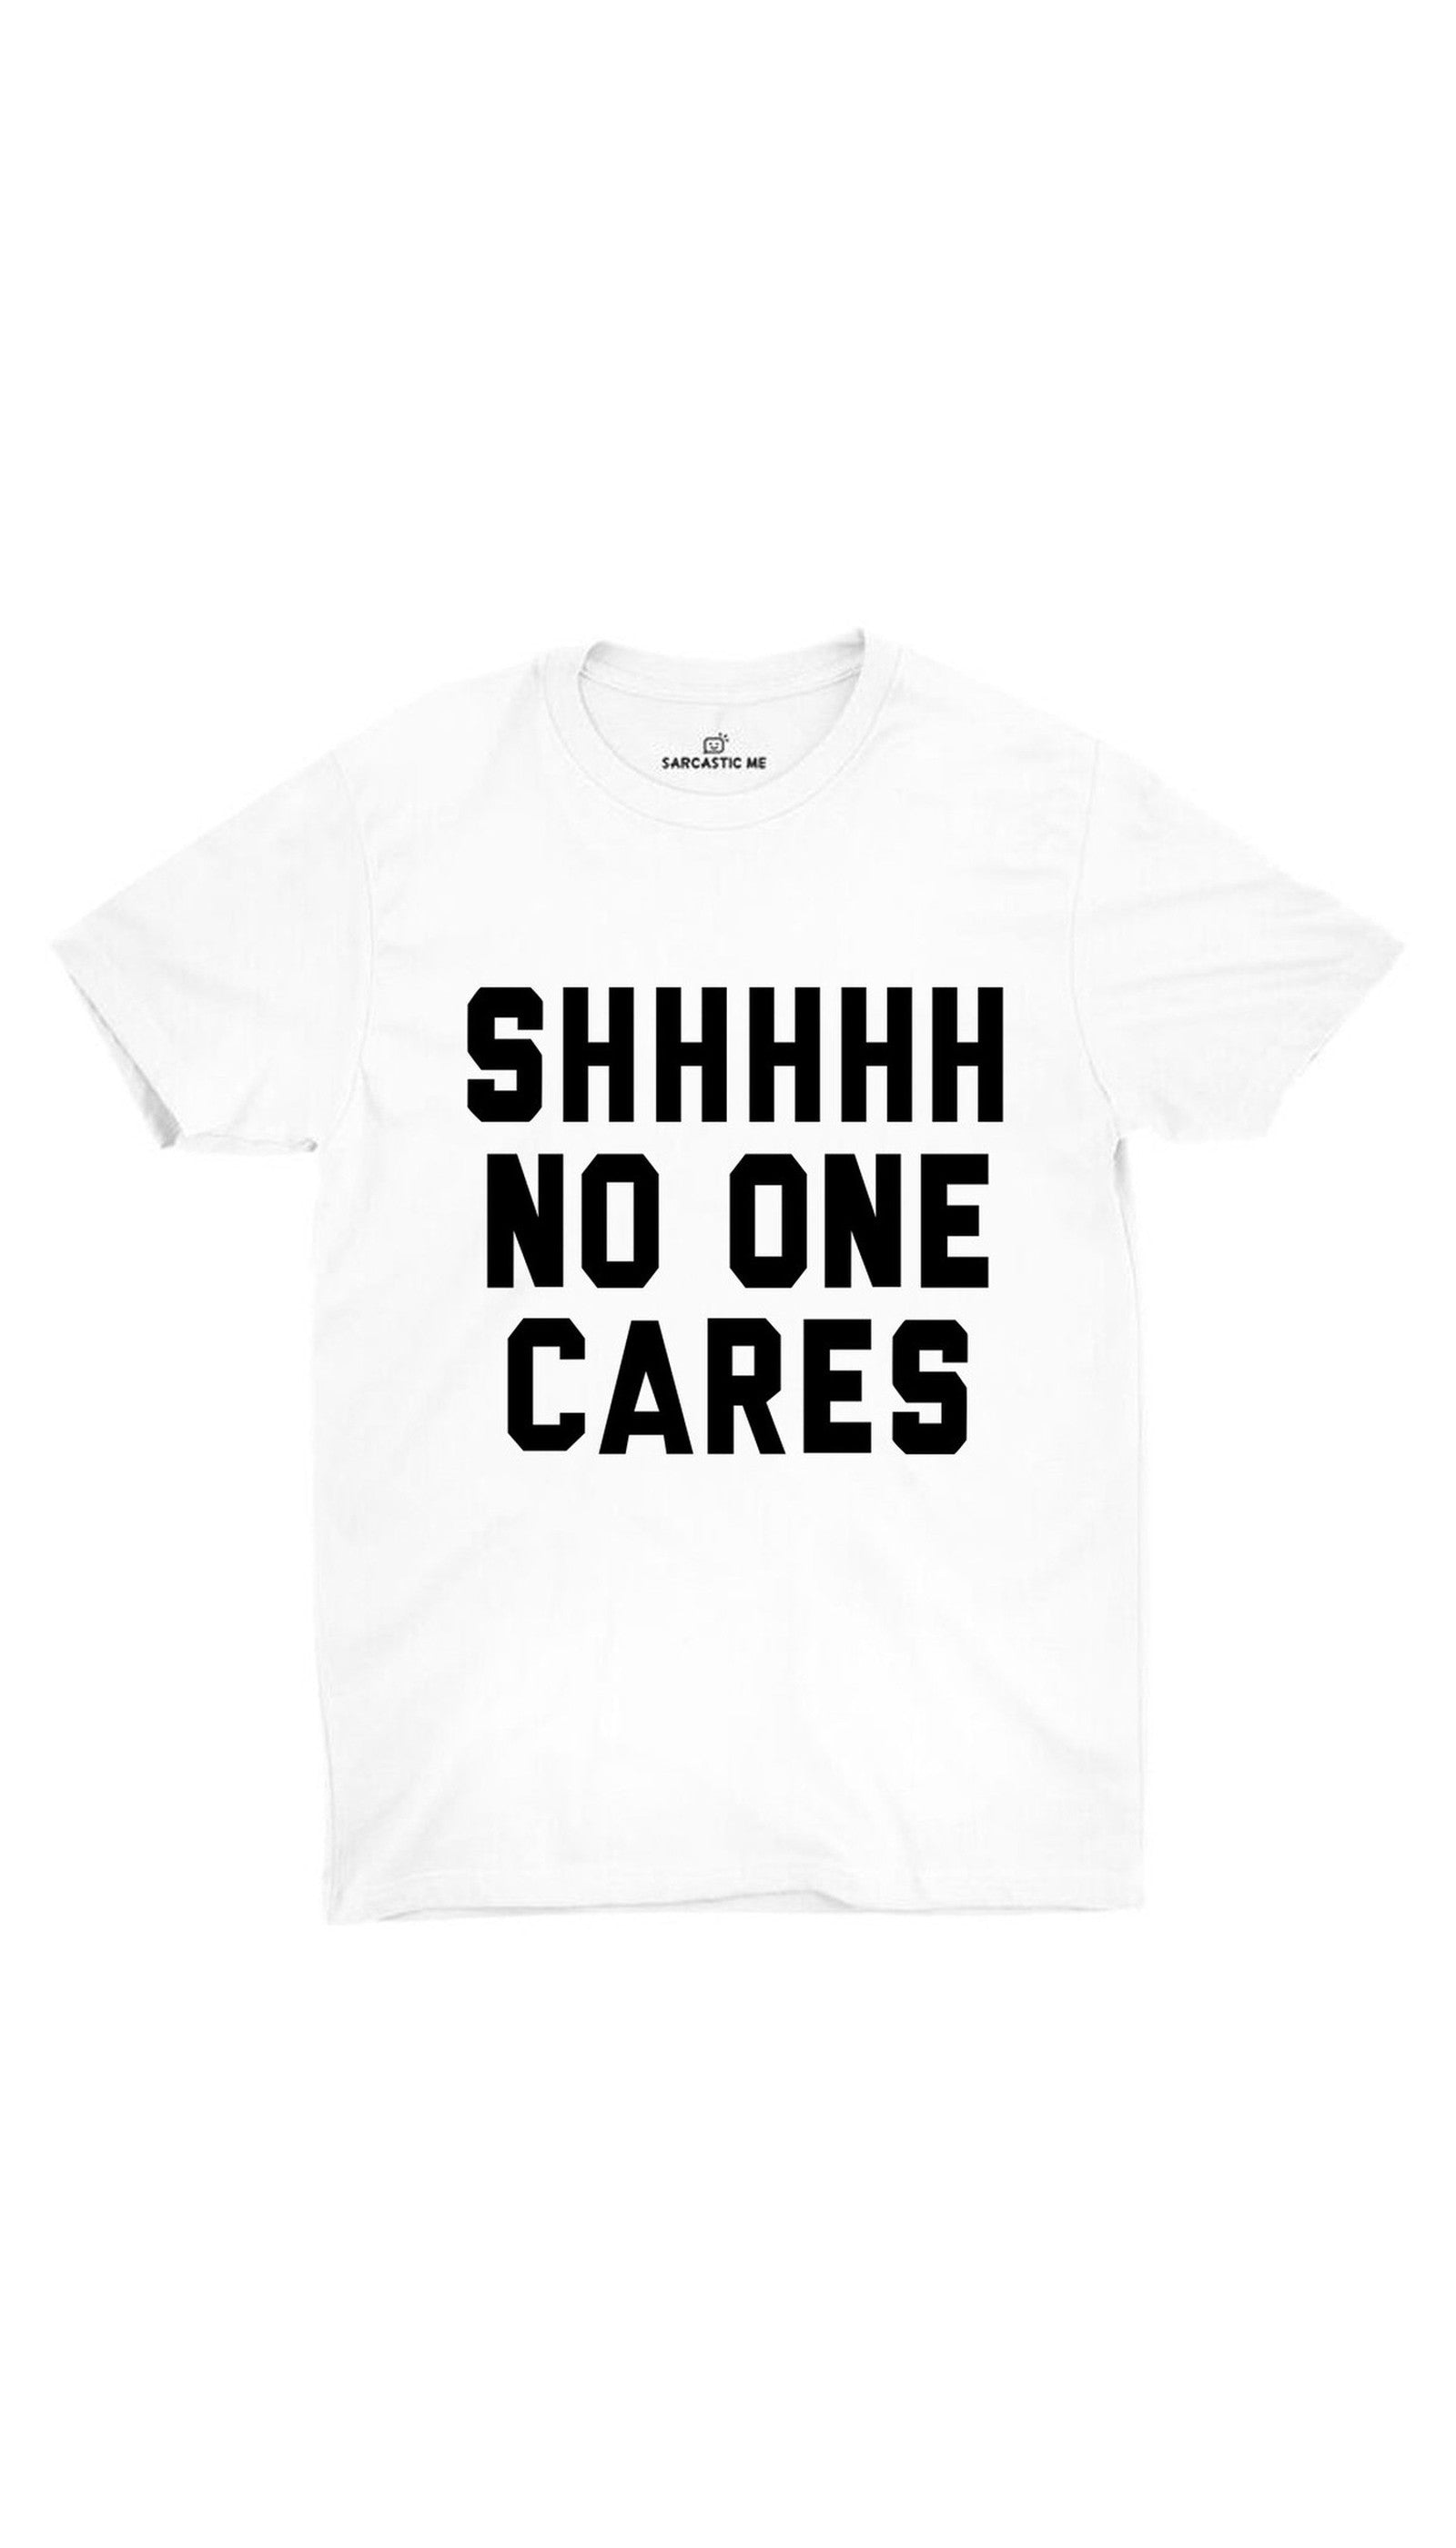 Shhhhh No One Cares White Unisex T-shirt | Sarcastic ME